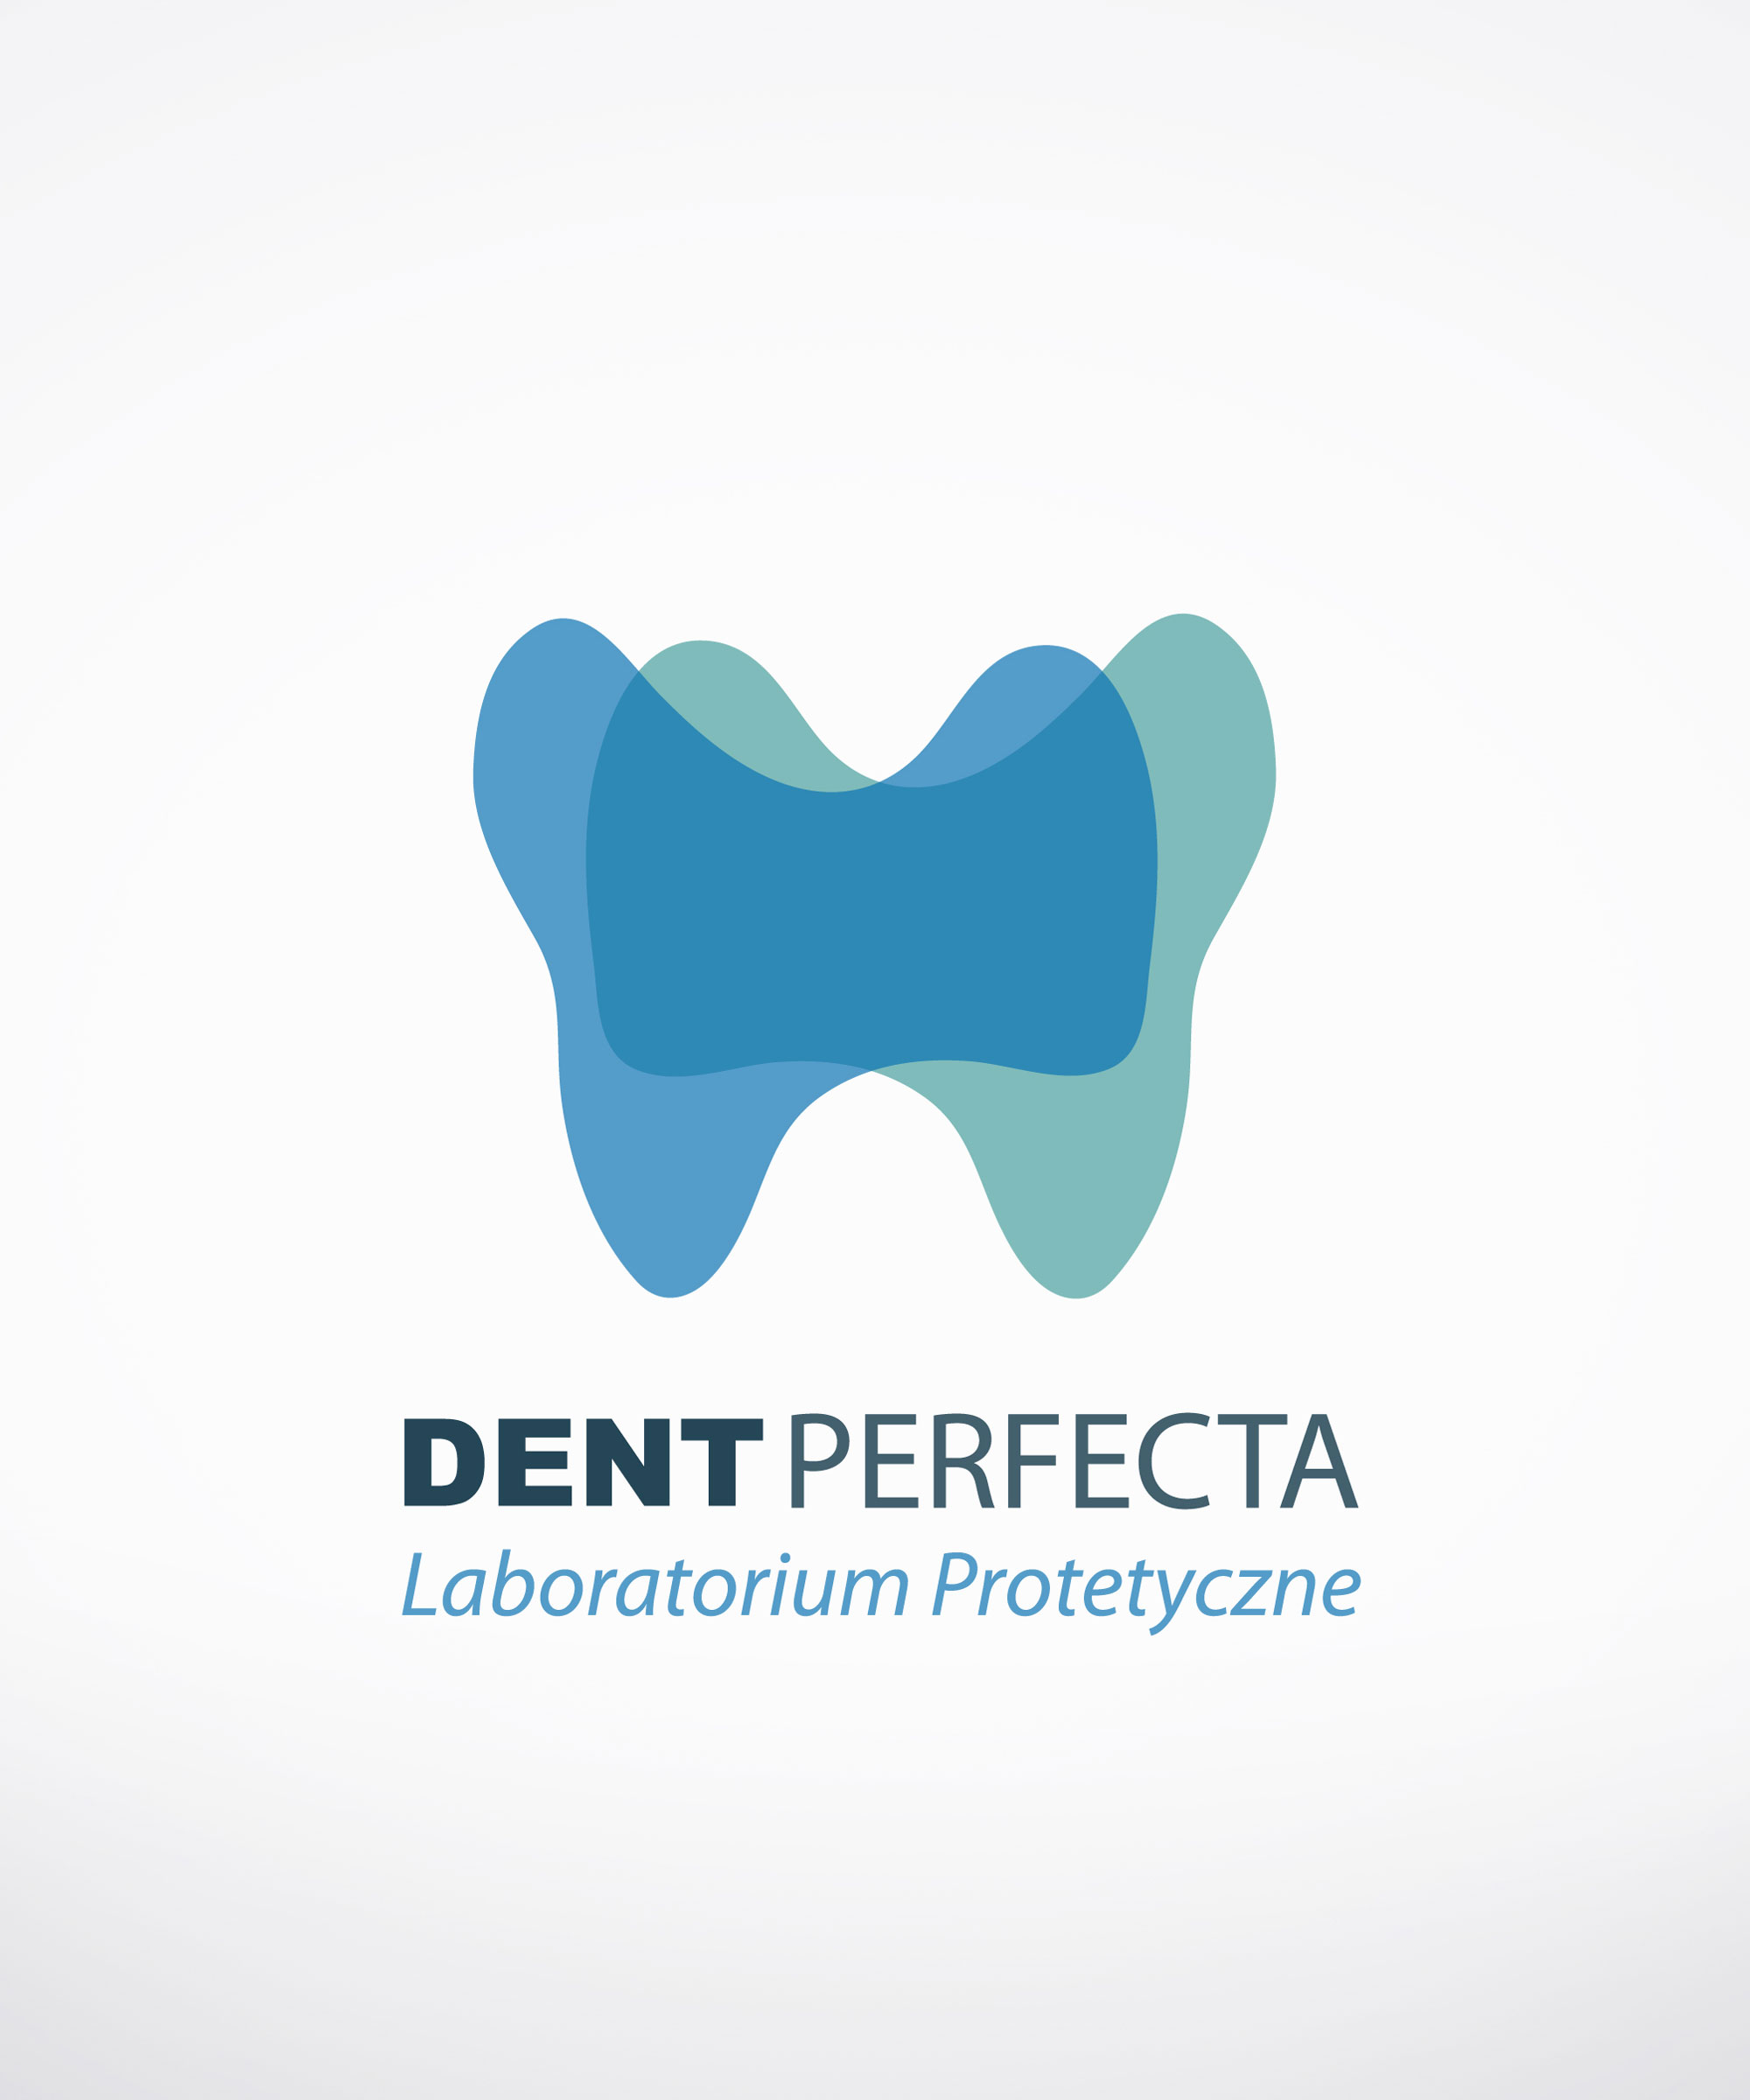 01-Dentperfecta